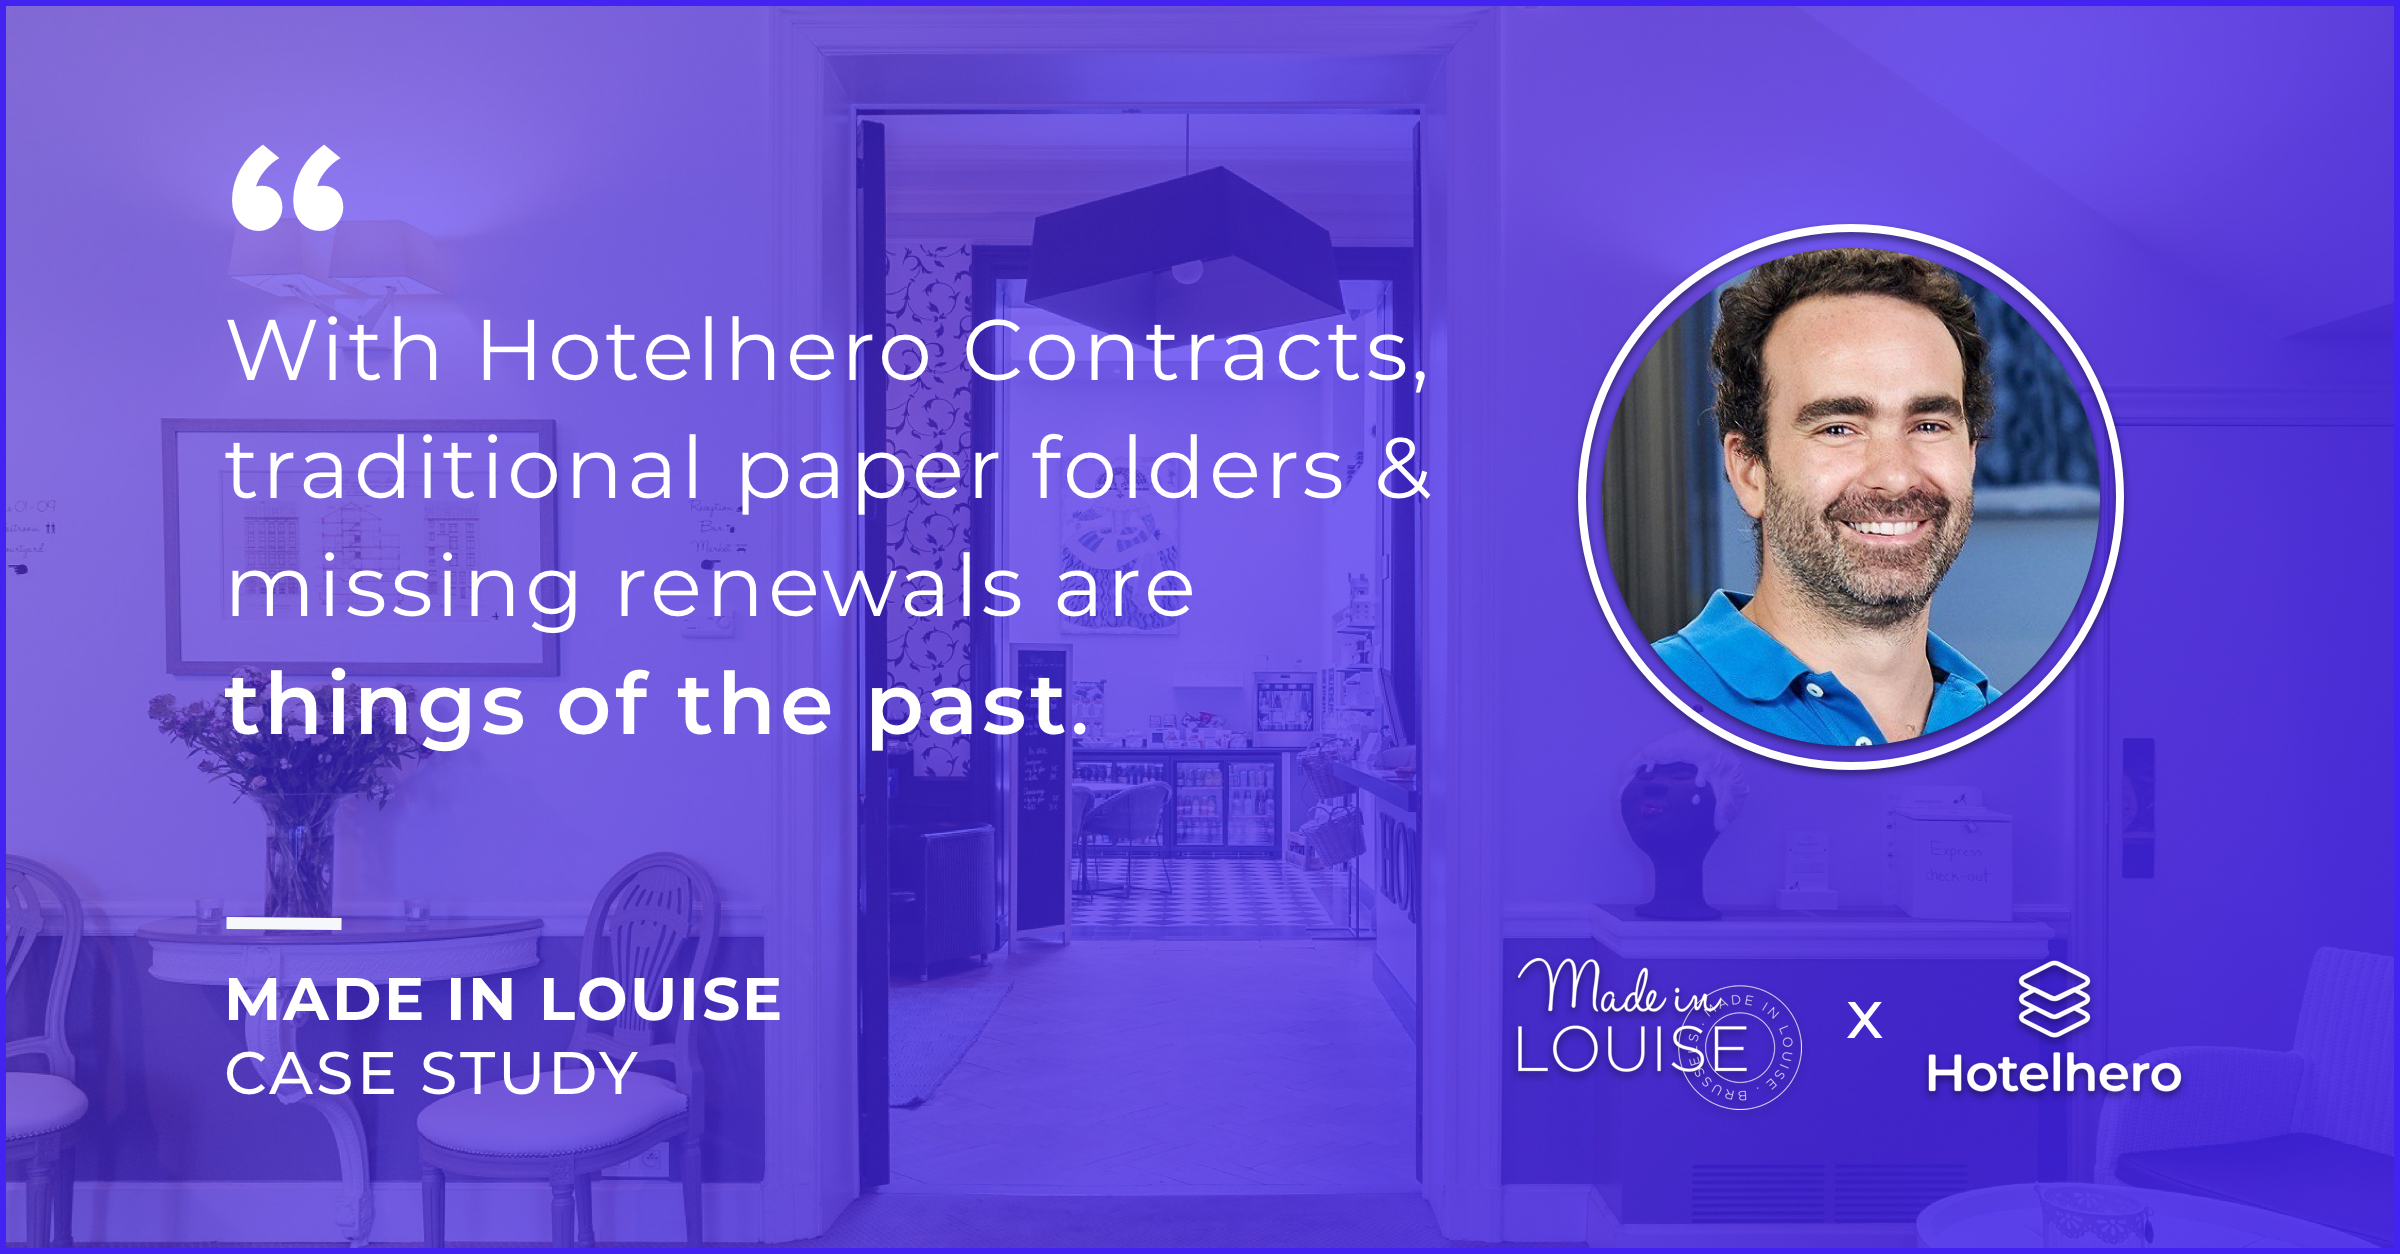 Made in Louise digitises its hotel contract & vendor managemen...